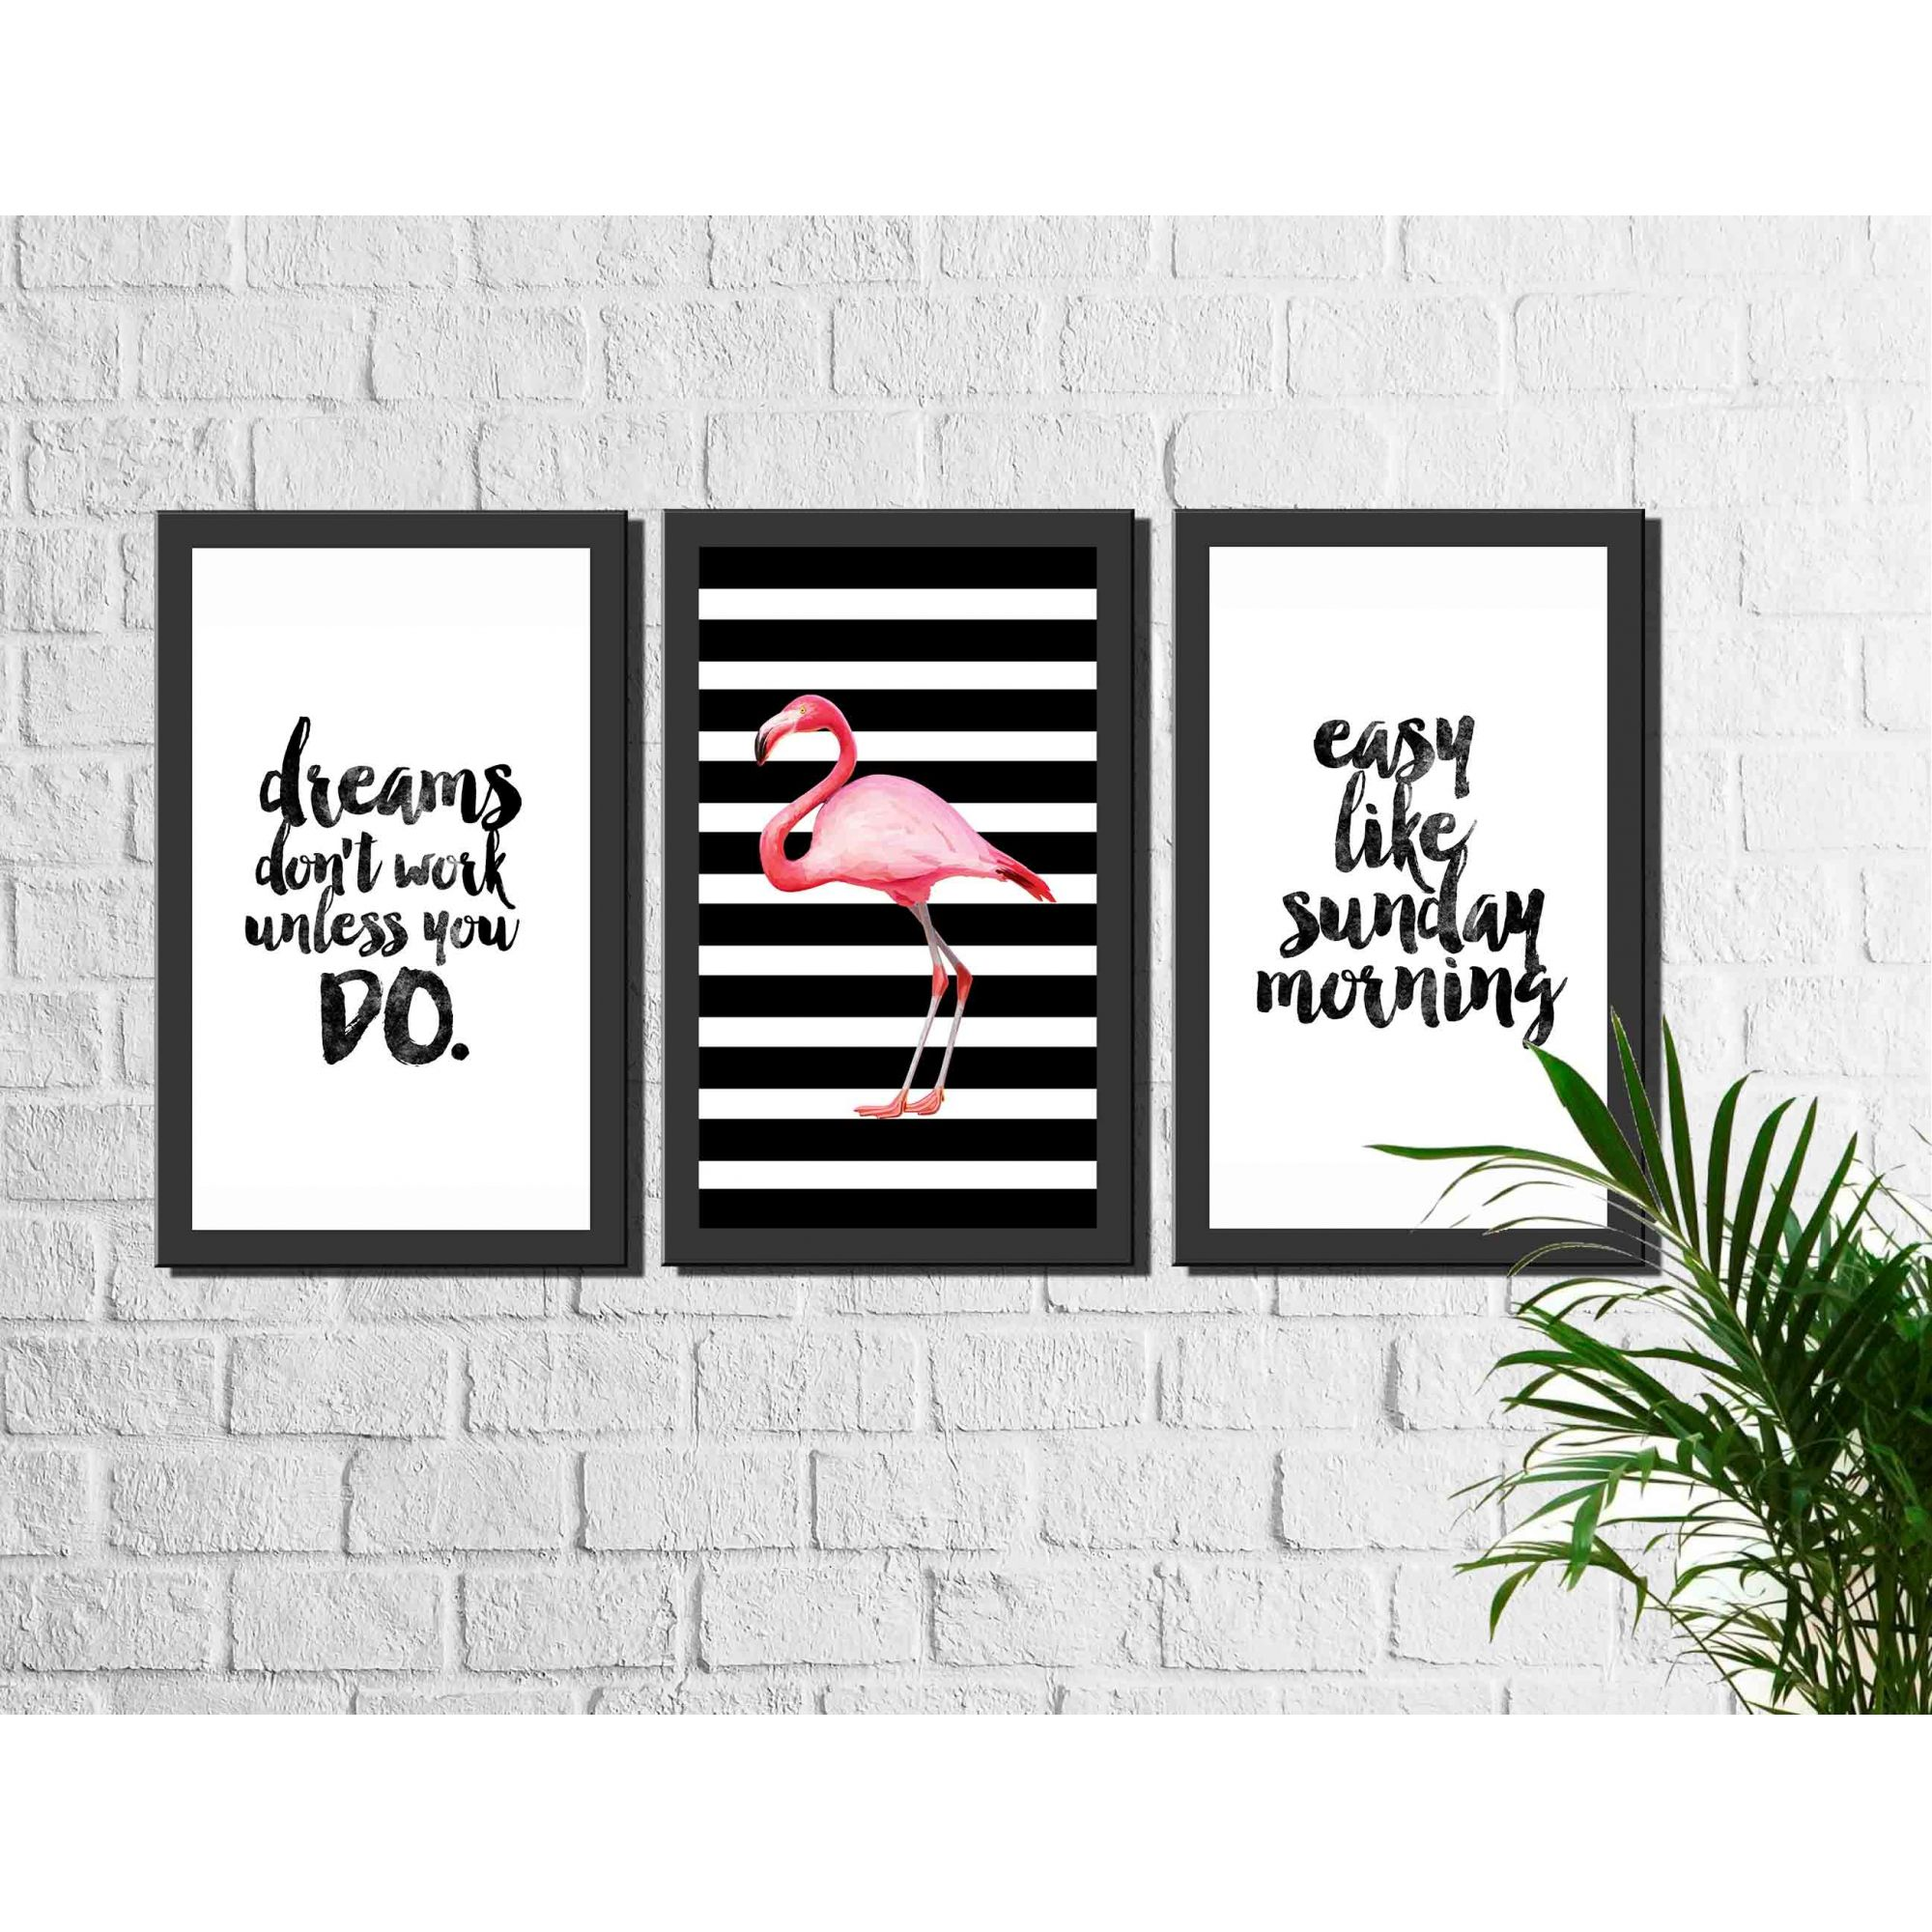 Kit 3 Quadros Decorativos Flamingo e Frases